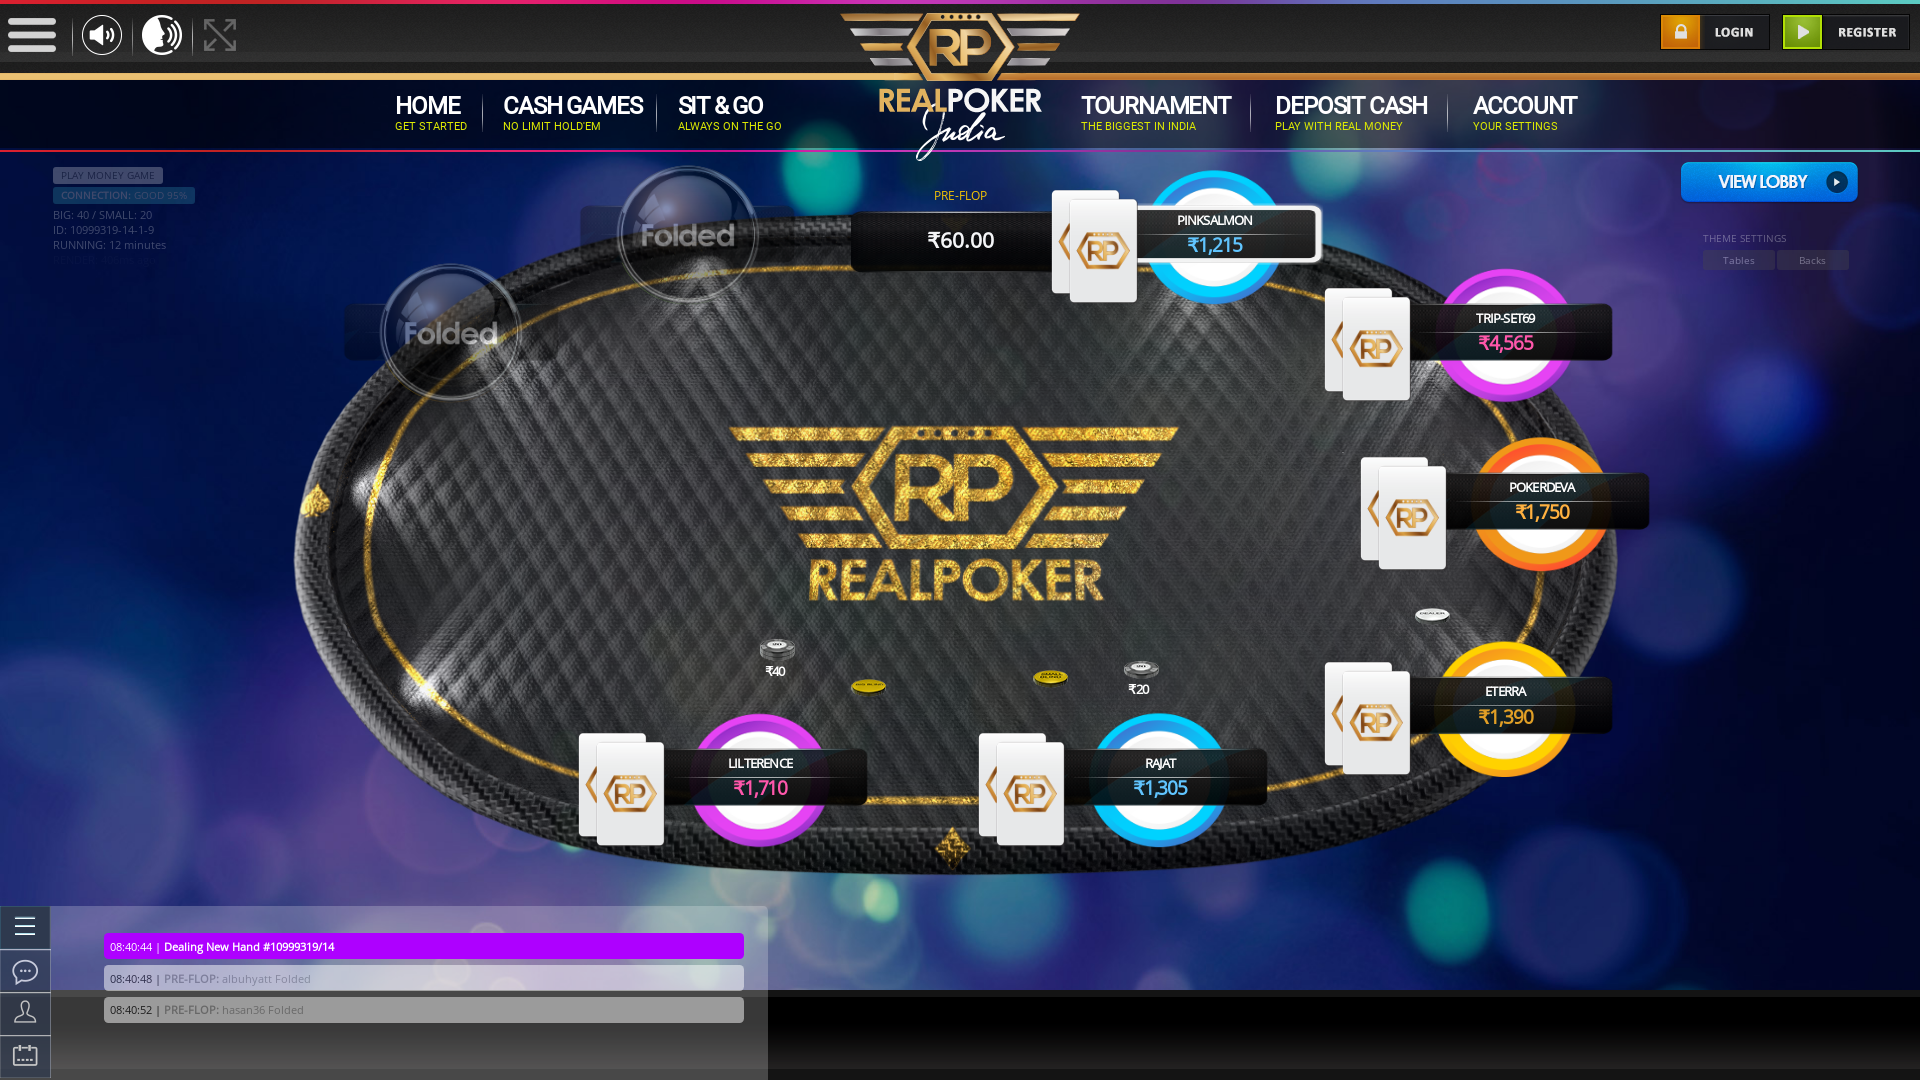 Nandini Layout, Bangalore Poker Website from May